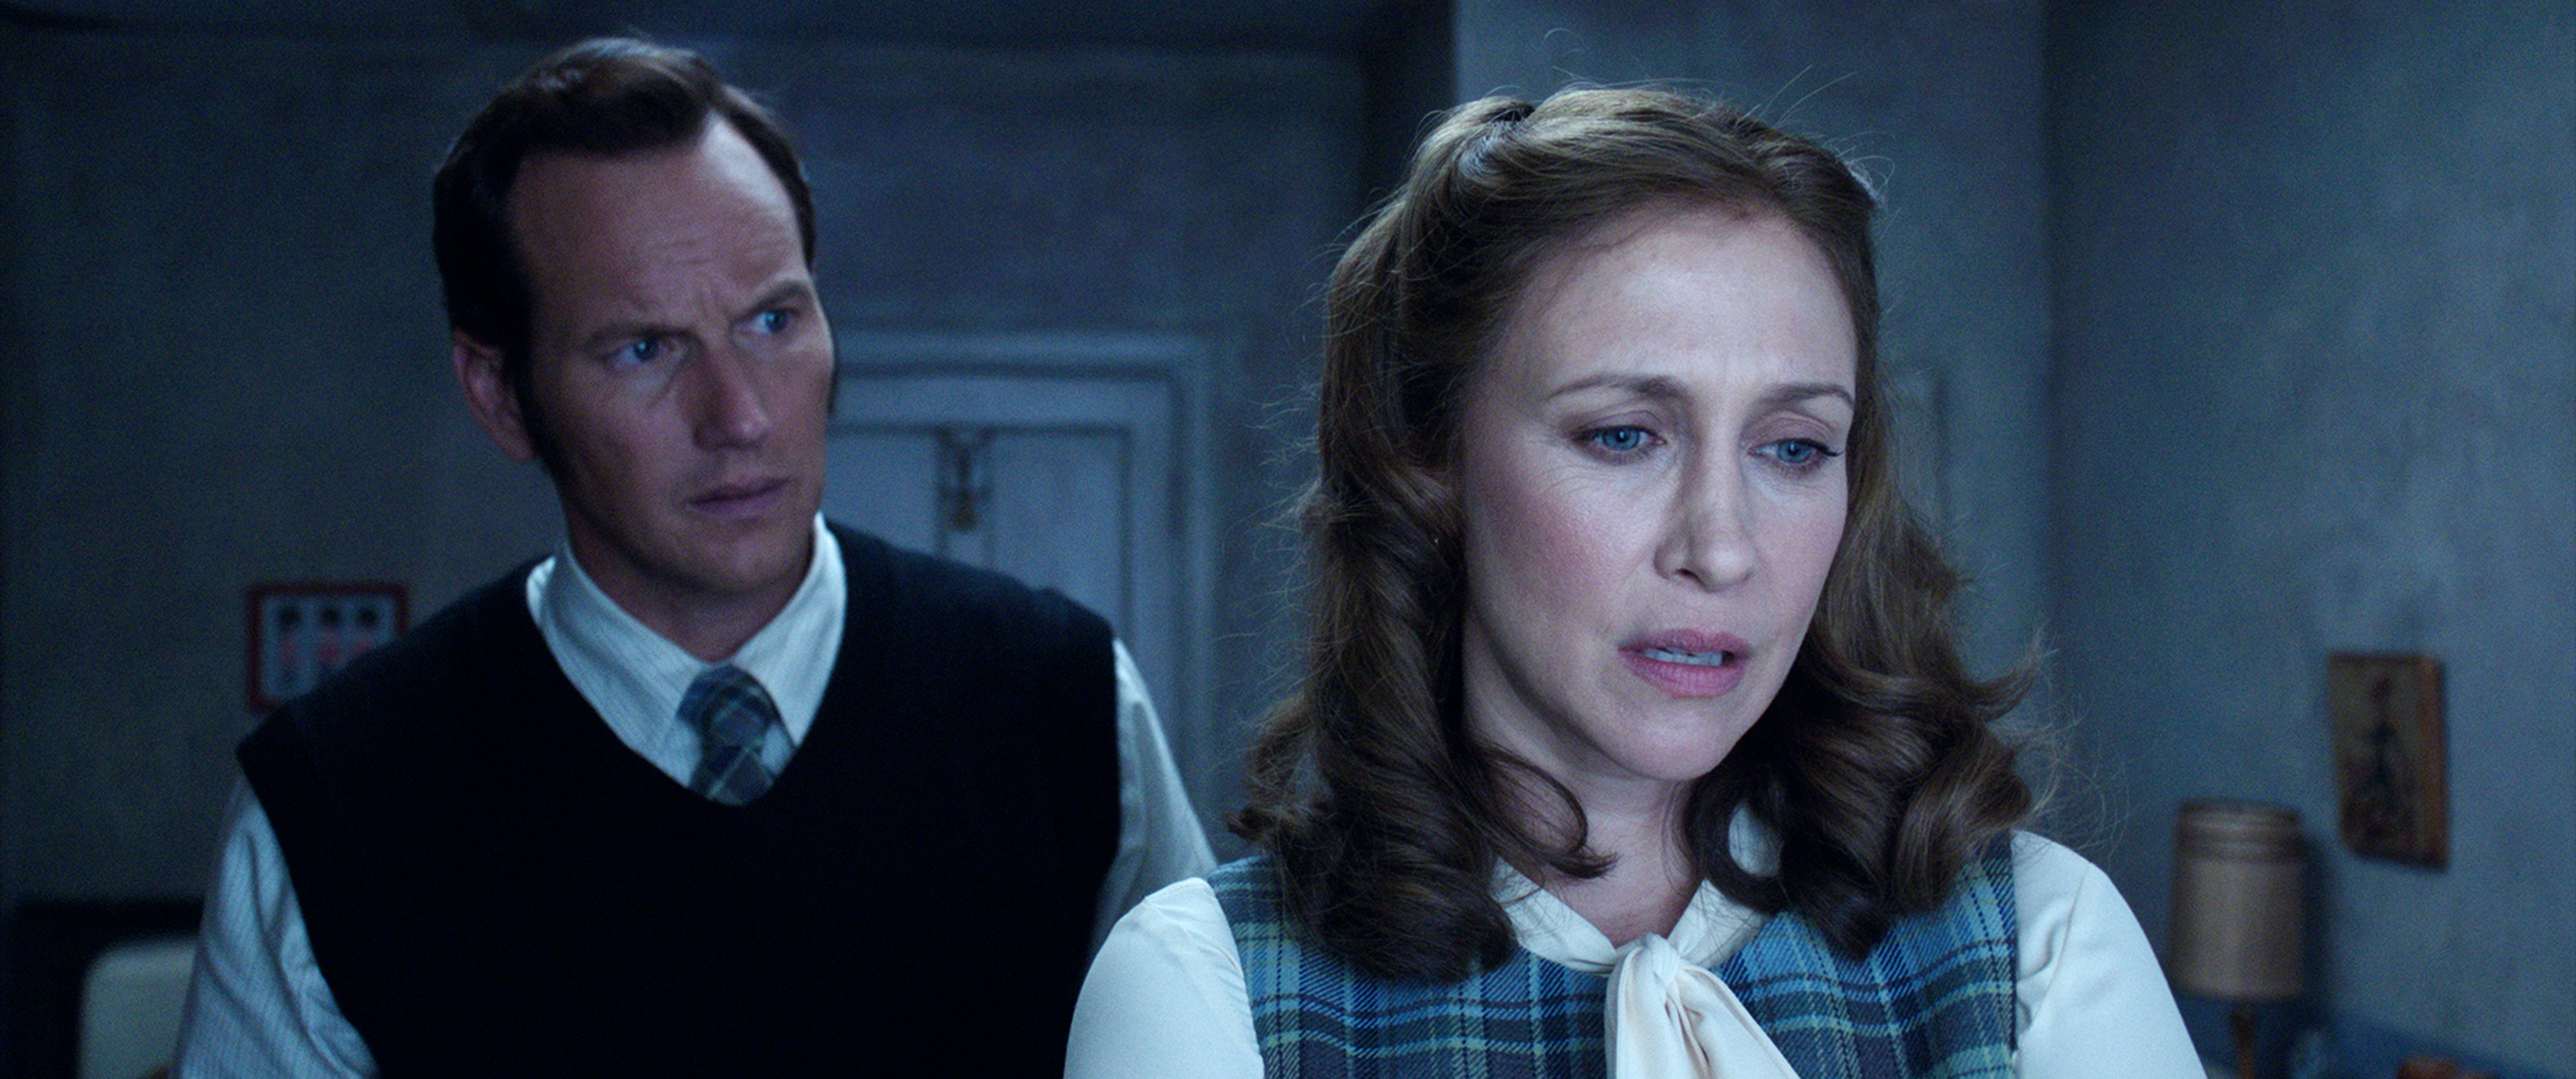 http://frontrowfeatures.com/wp-content/uploads/2016/06/0607conjuring205_hi.jpg